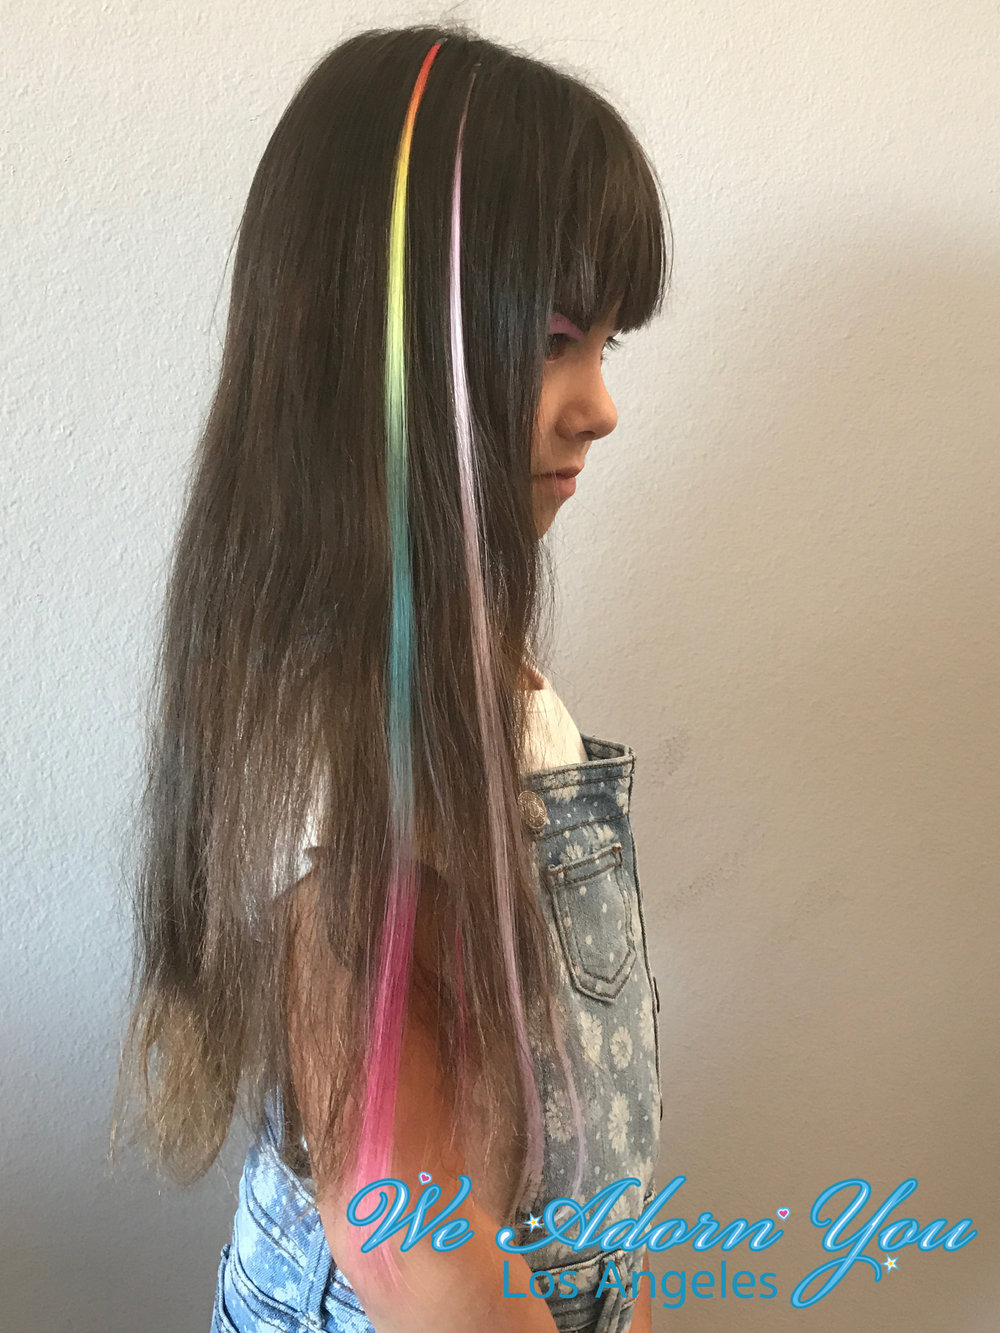 We Adorn You Los Angeles Unicorn Hair Rainbow.jpg